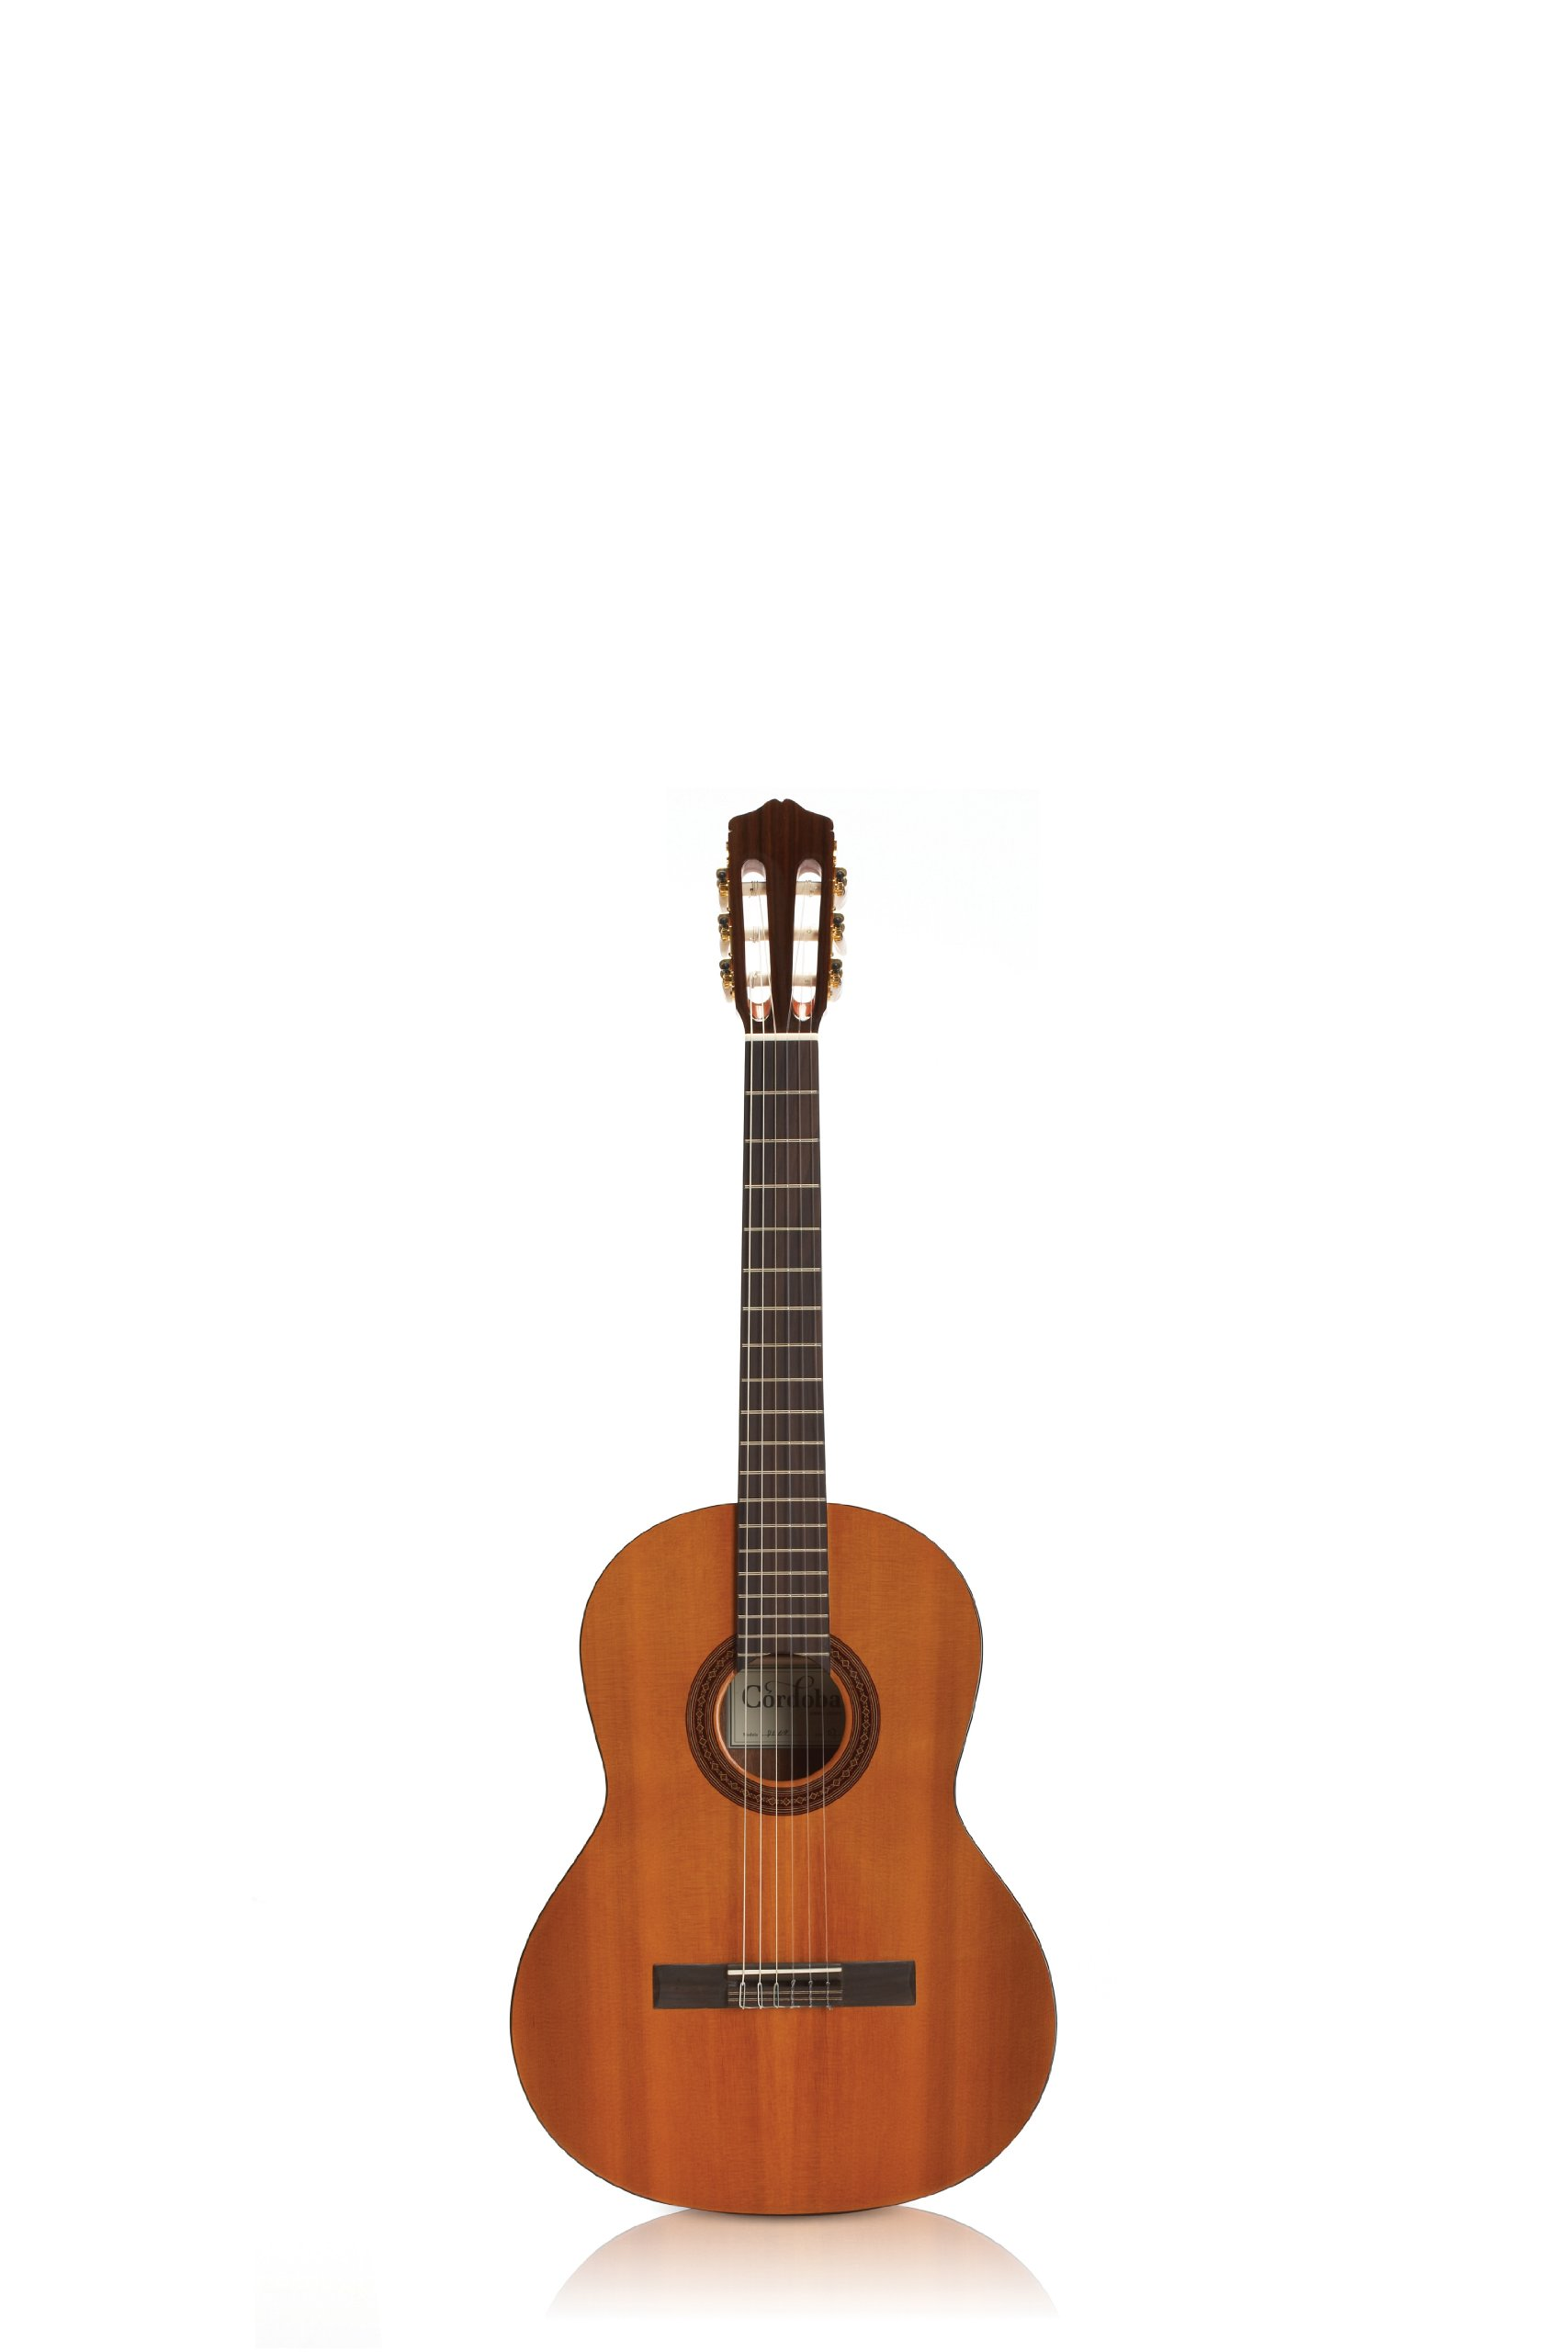 Cordoba Dolce 7/8 Size Acoustic Nylon String Classical Guitar - best beginner guitar under 300